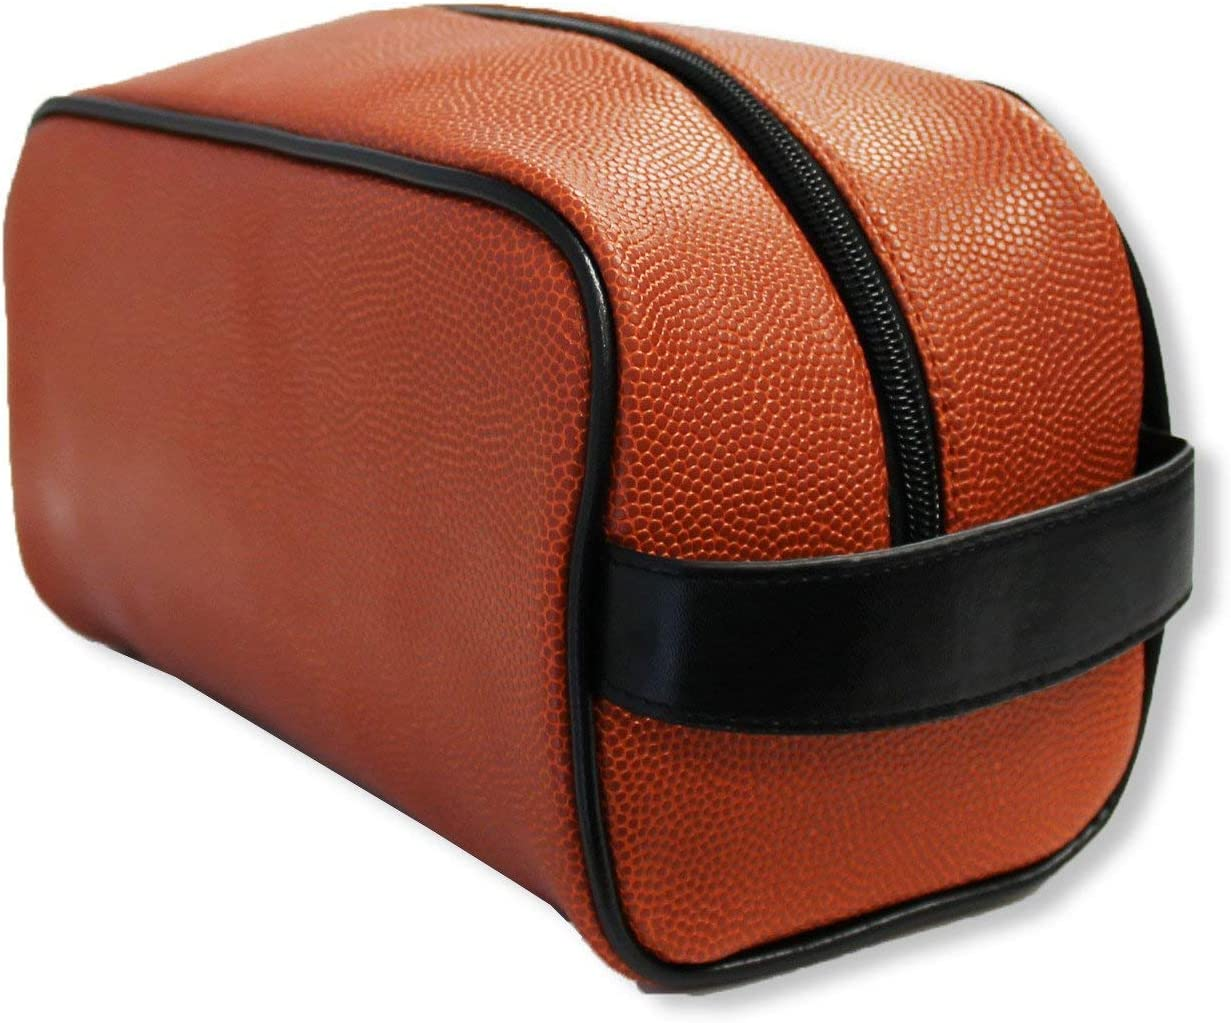 Maritime bag made of cotton and synthetic leather